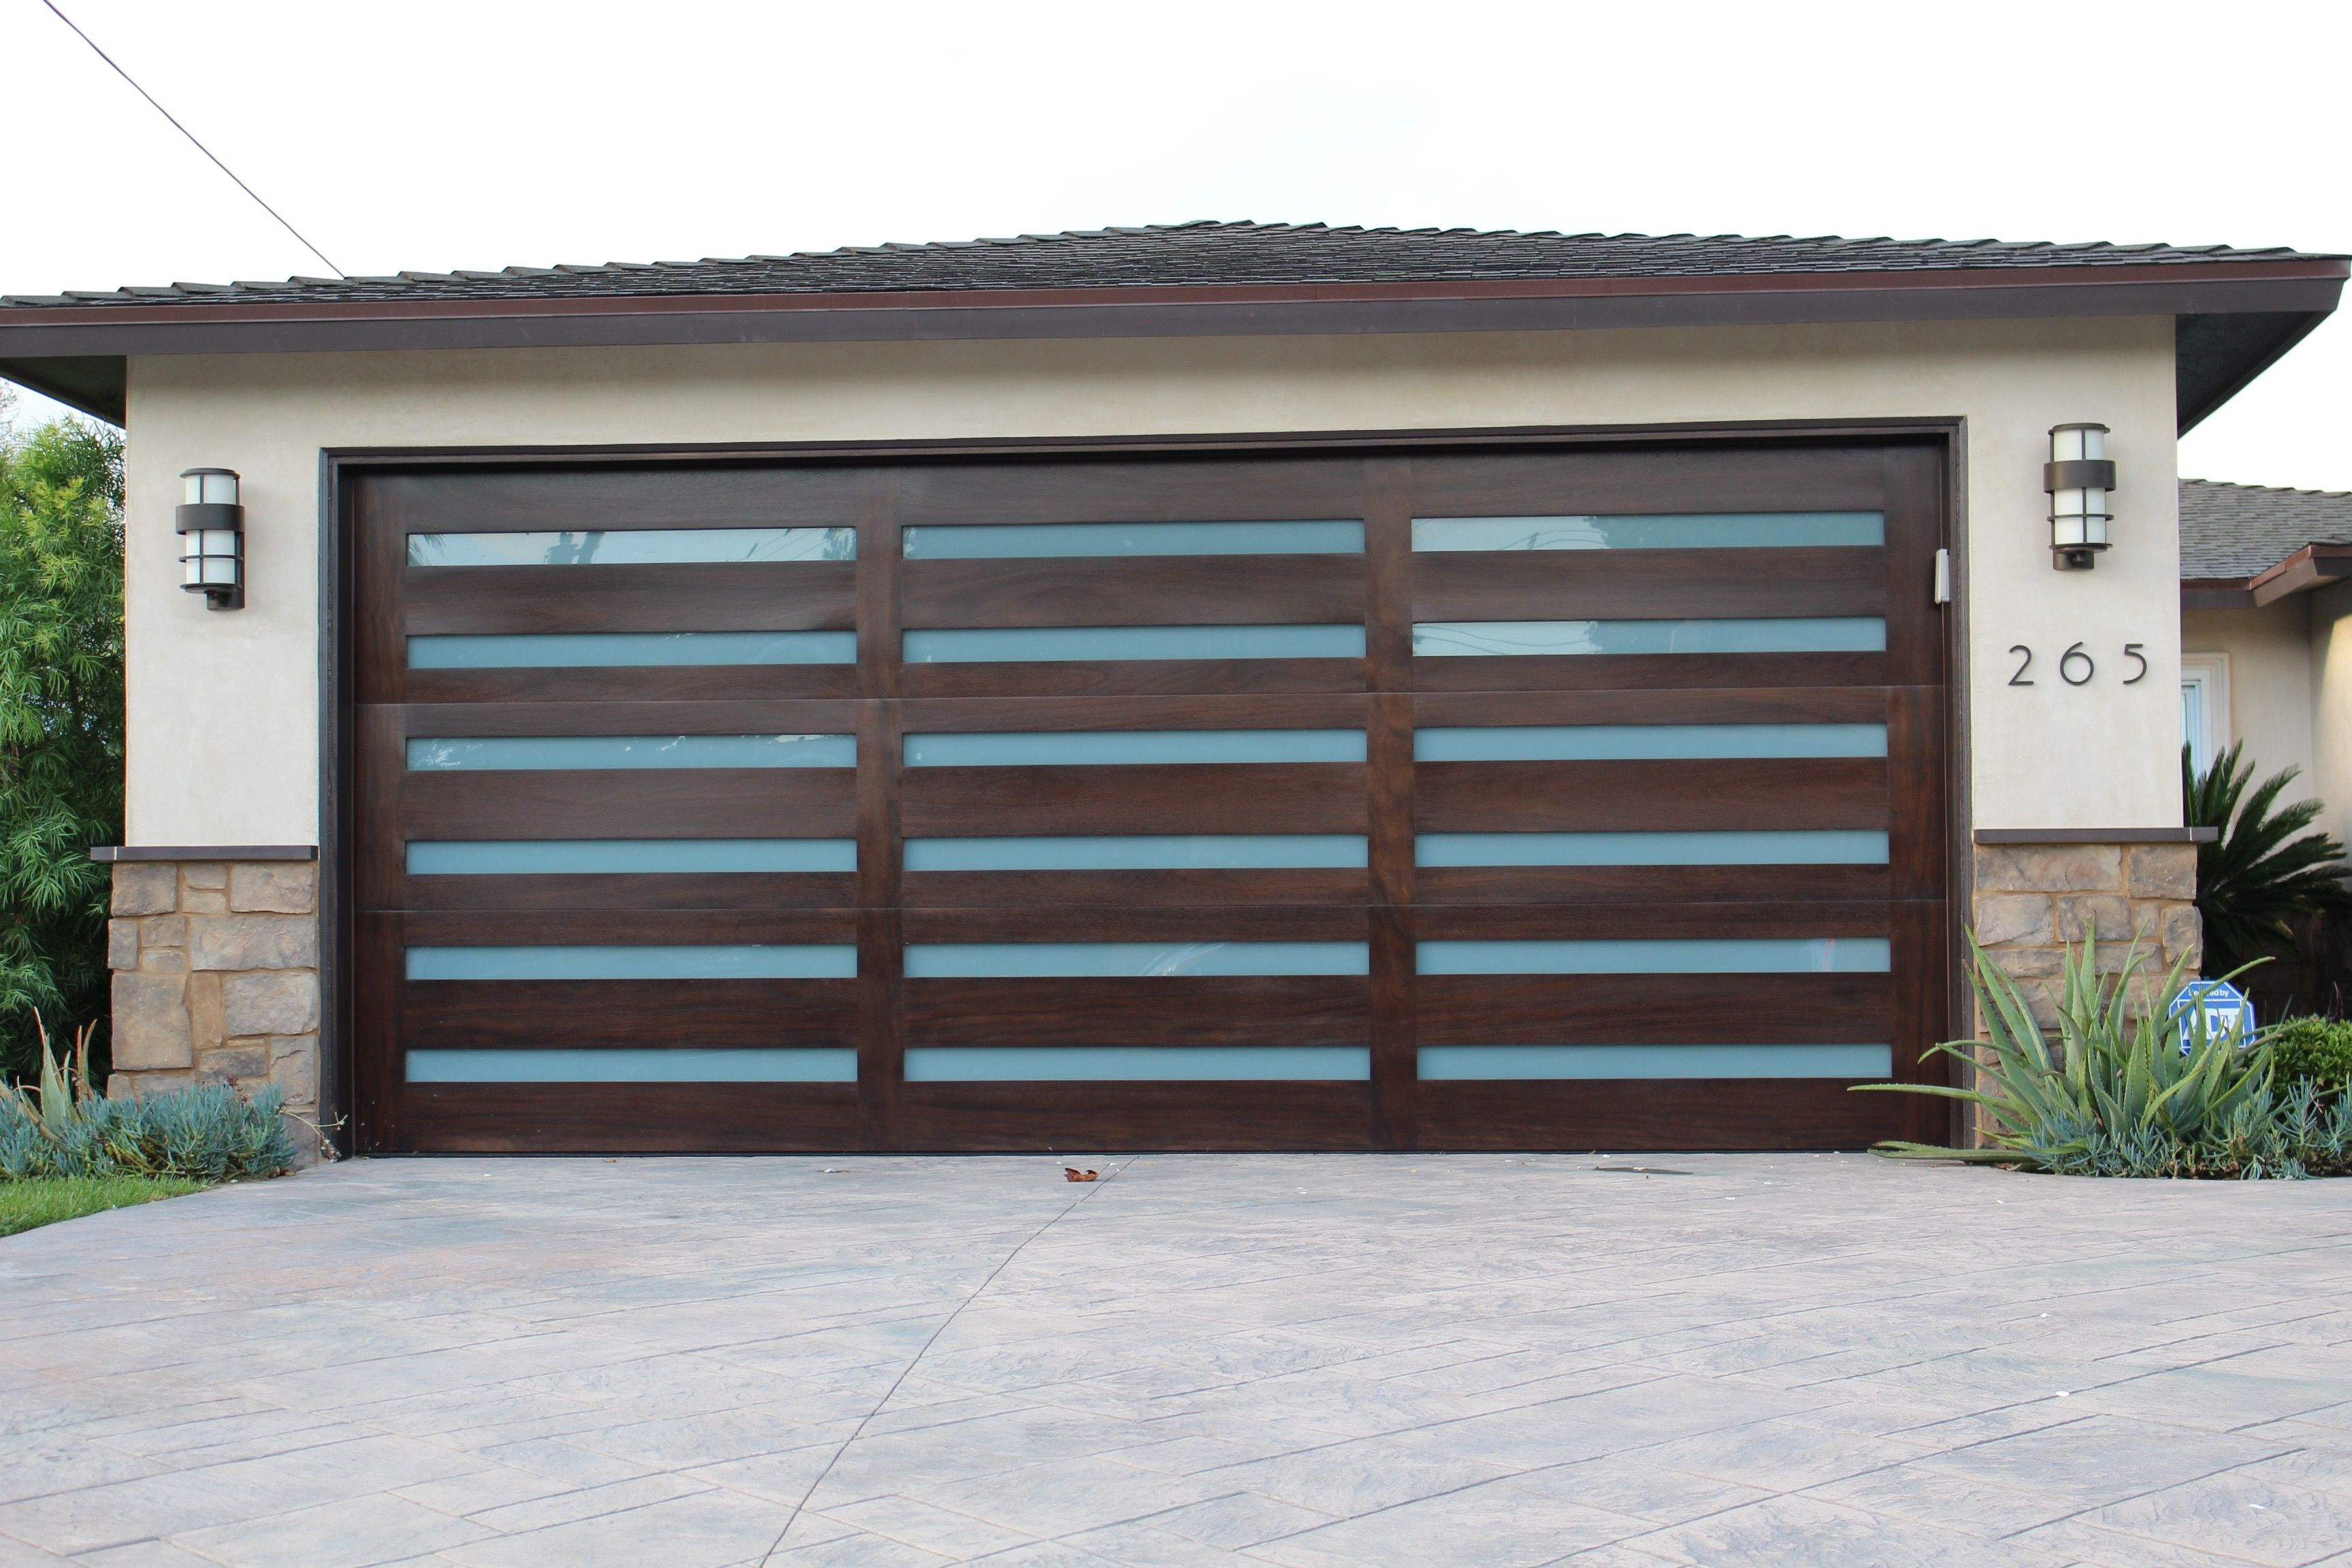 Trendy Modern Architecture On This Custom Door In Tustin Is Brought To Life By The Exquisite M Garage Door Design Contemporary Garage Doors Modern Garage Doors